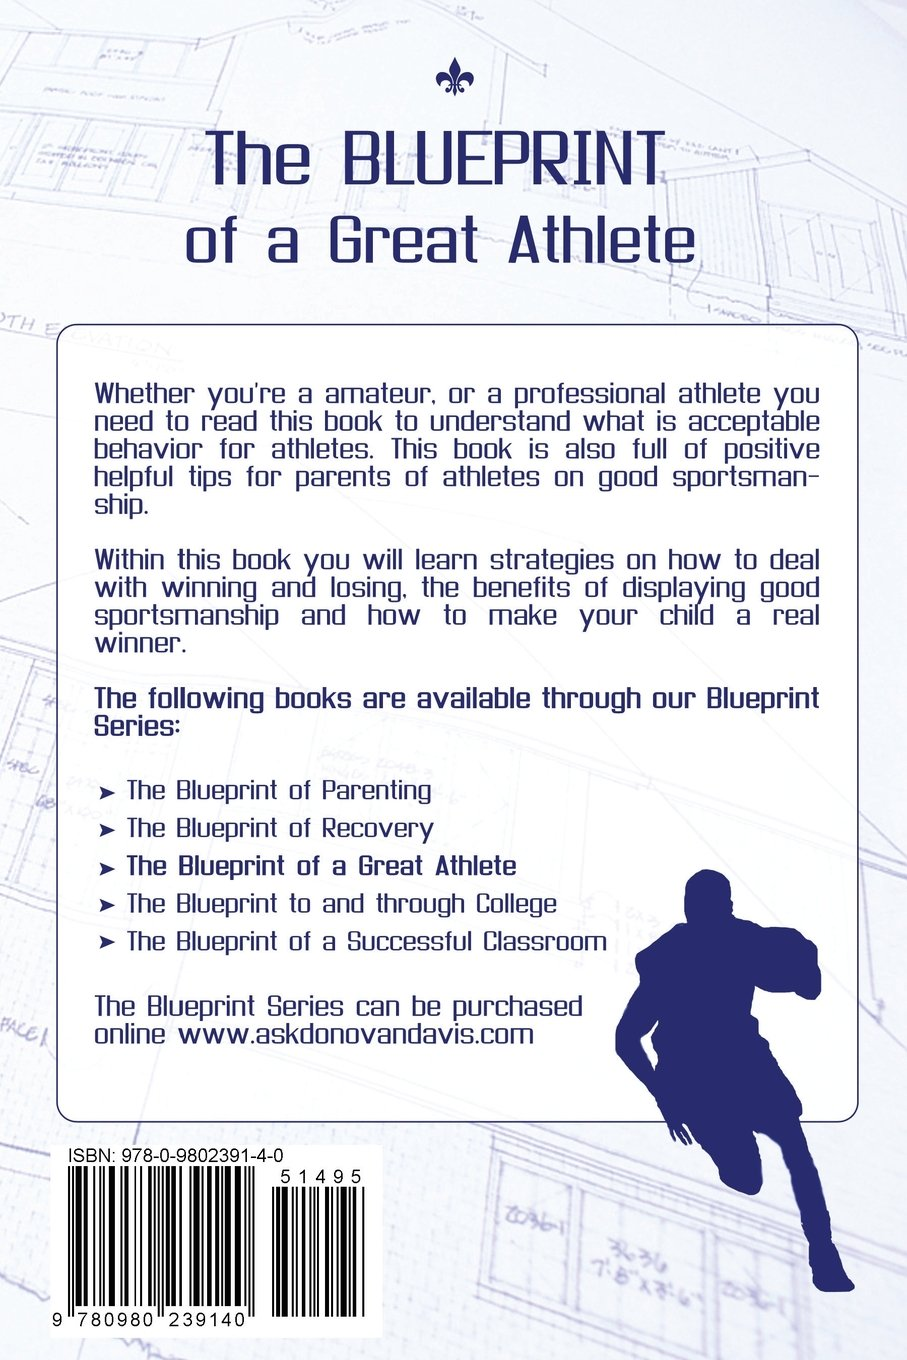 The blueprint of a great athlete donovan d davis 9780980239140 the blueprint of a great athlete donovan d davis 9780980239140 amazon books malvernweather Image collections